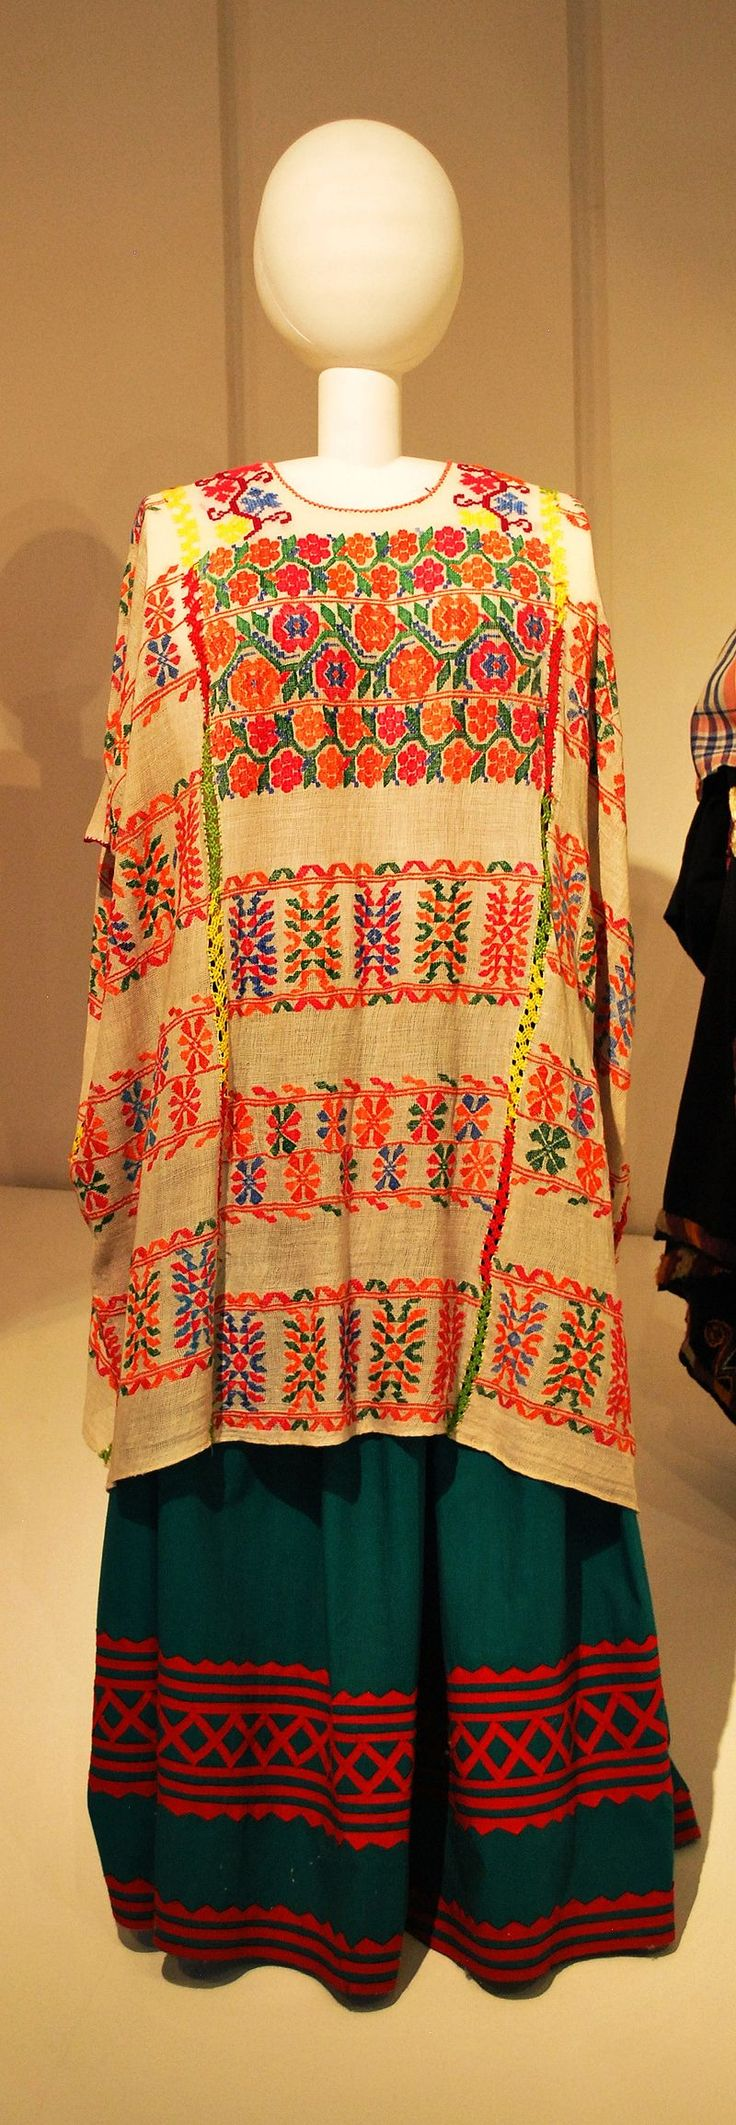 Museo de Arte Popular, Mexico City Picture Gallery -Example of Traditional Oaxaca Dress